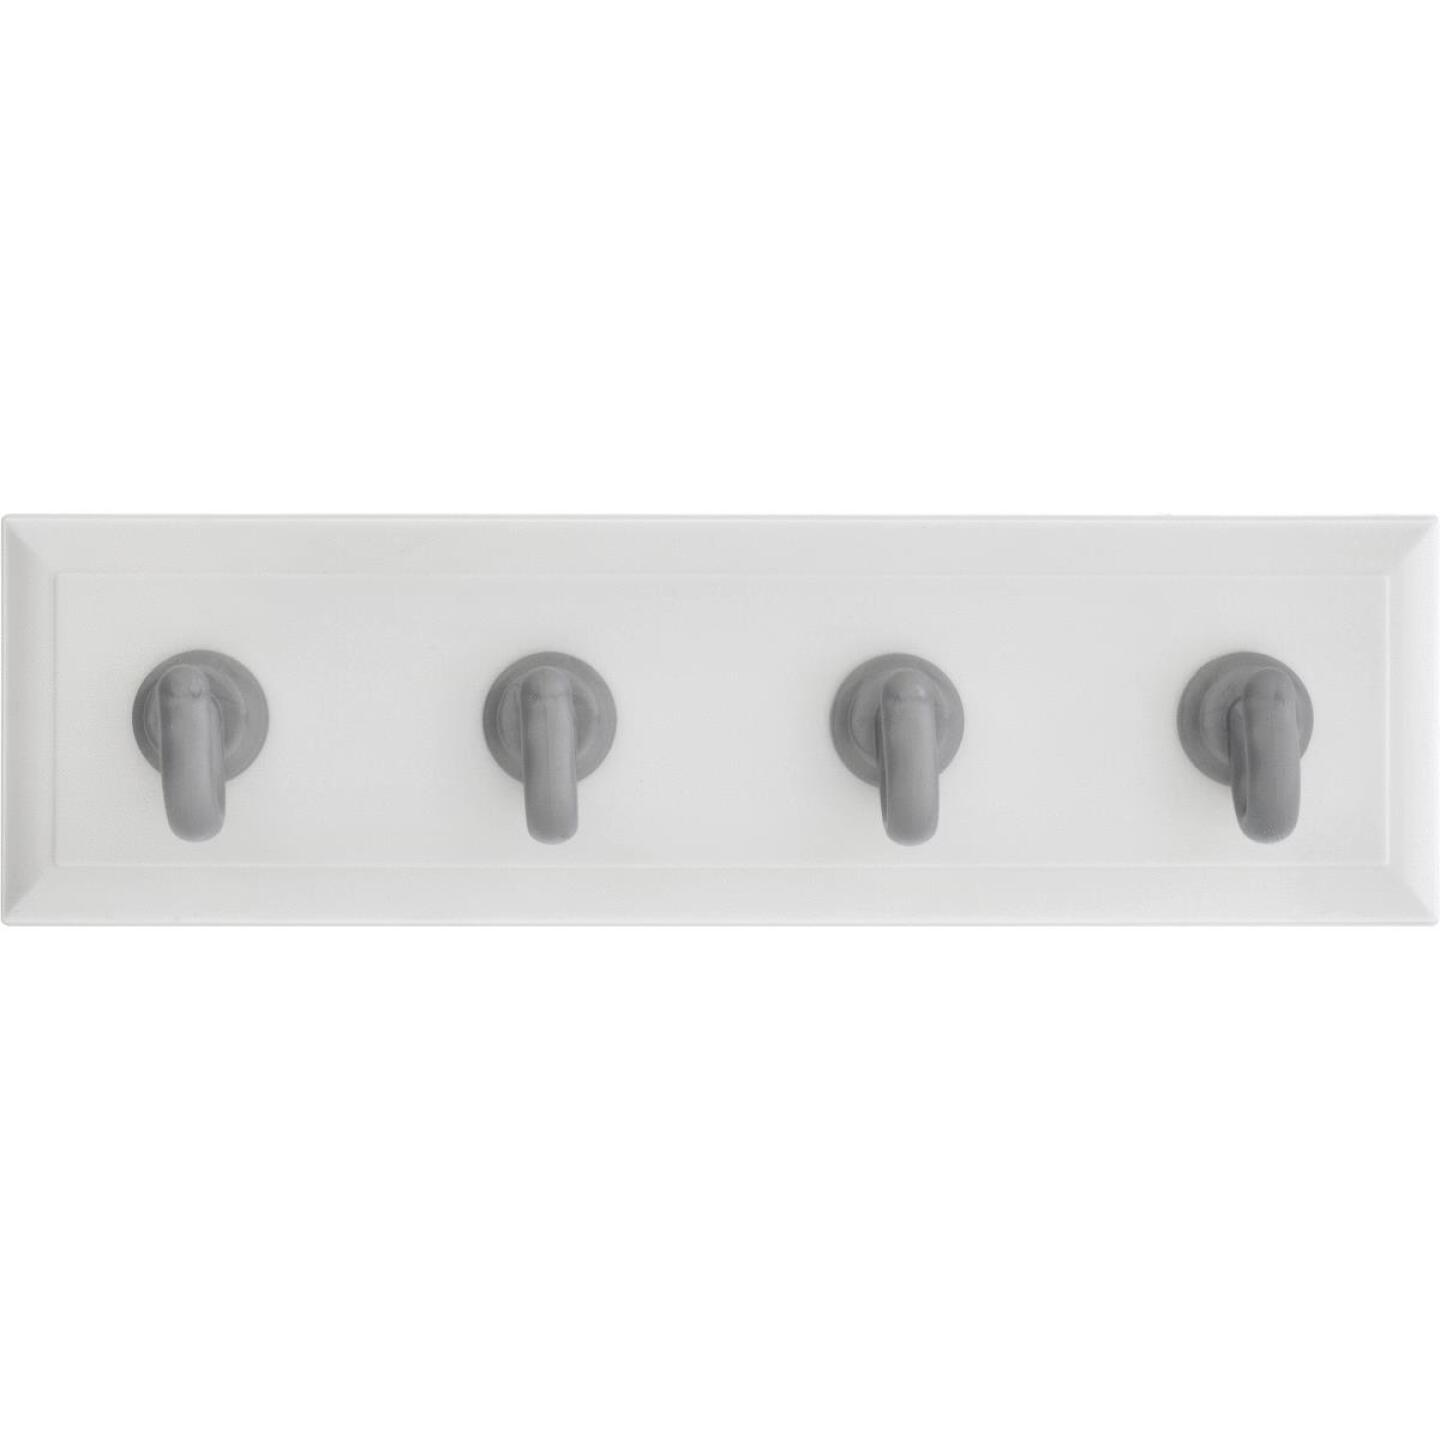 Hillman High and Mighty 10 Lb. Capacity White Key Rail with Silver Hooks Image 2